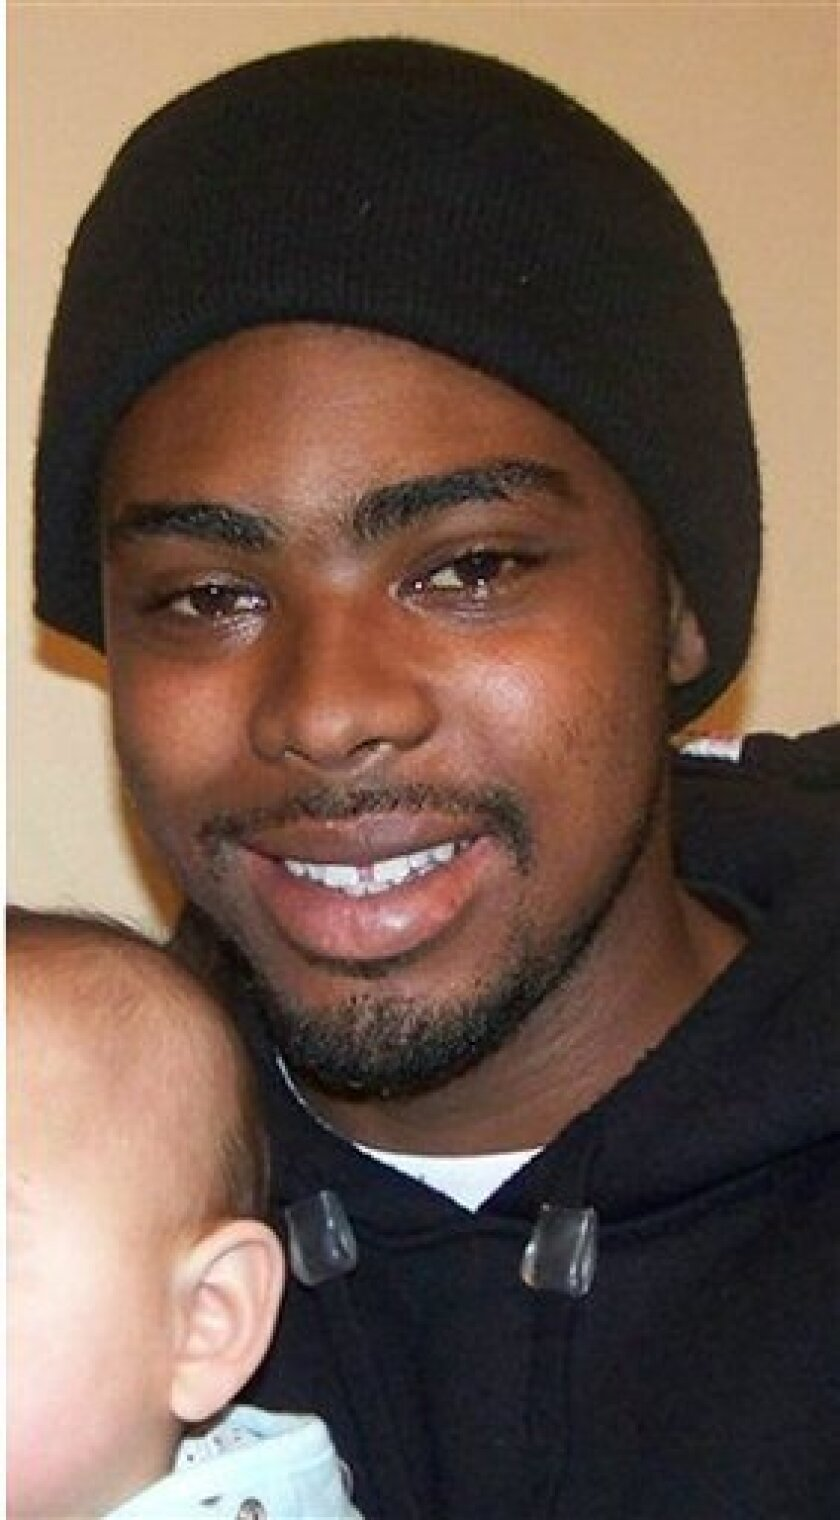 This undated family file photo provided by the Law Offices of John Burris shows Oscar Grant, a 22-year-old transit rider who was shot and killed by BART police on New Year's Day, 2009.   A Douglas County jail official confirmed that 27-year-old Johannes Mehserle, who was involved in the incident, w